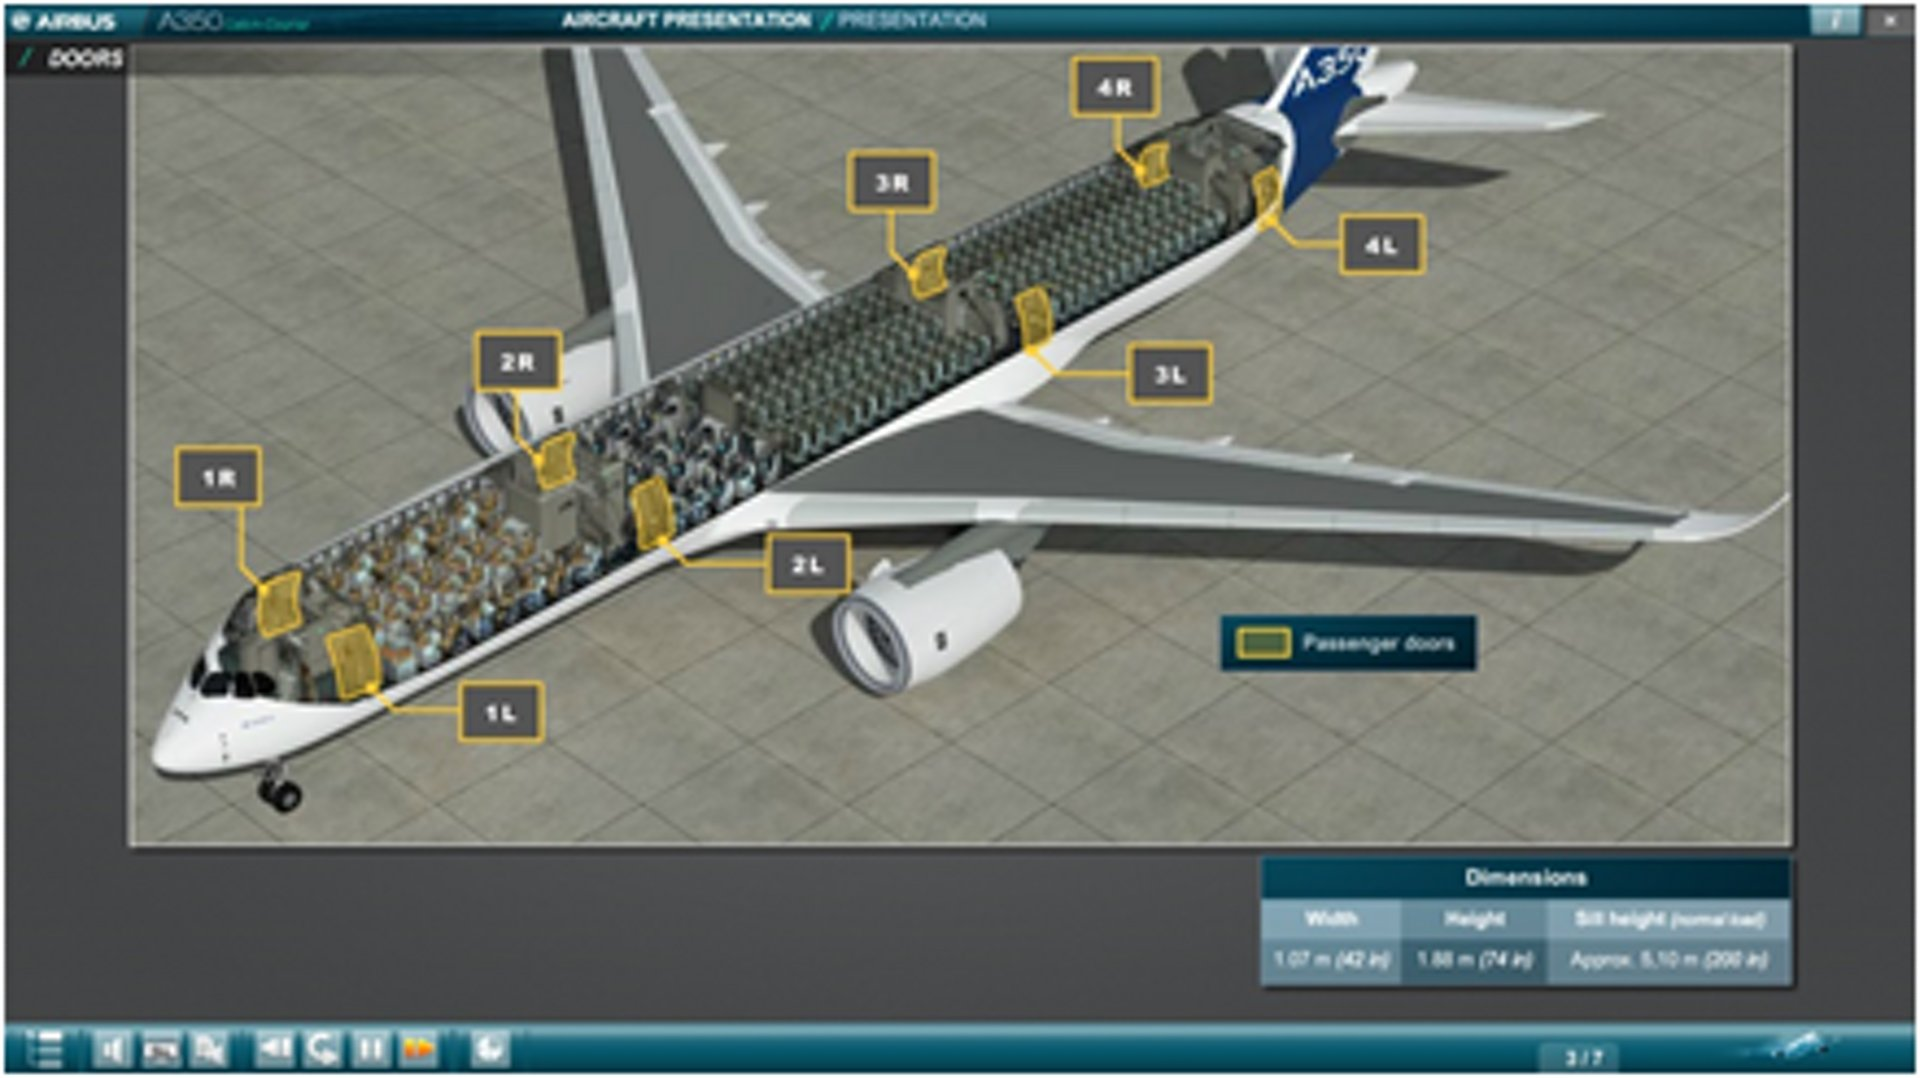 Visual for Cabin crew training courses, digital trainings and turnkey solutions